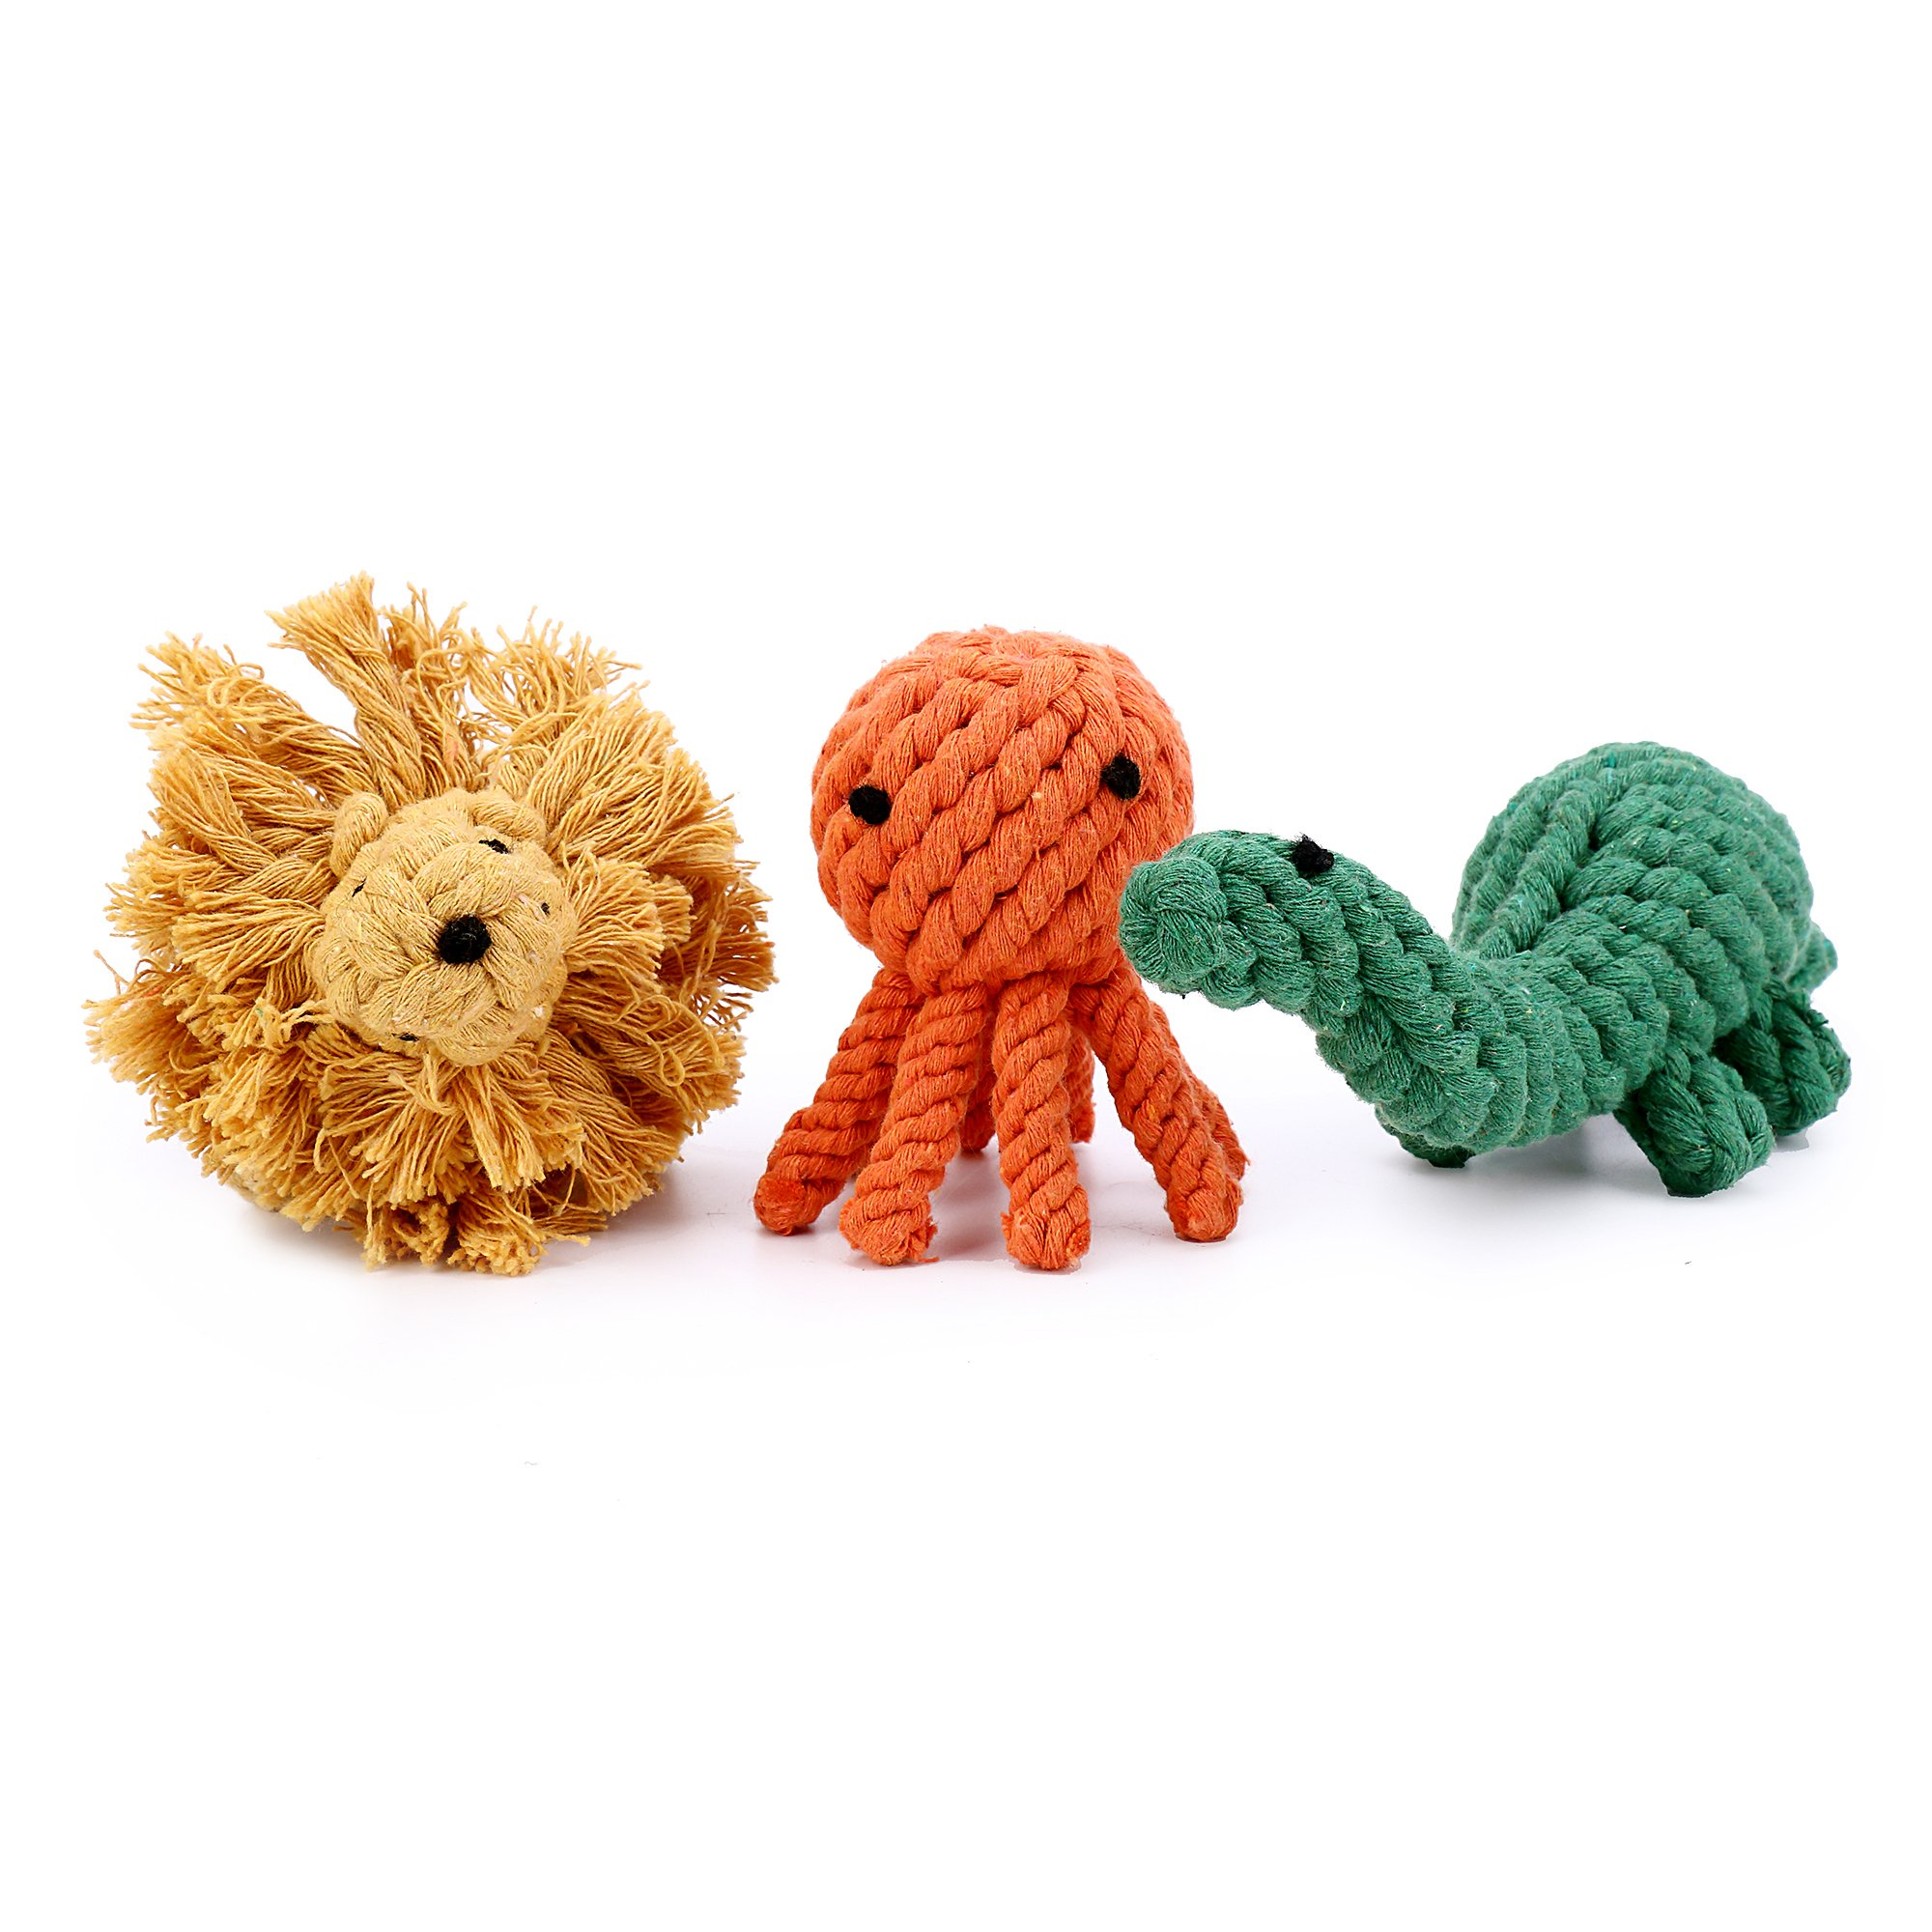 3-pack Cute Animal-Shape Tooth Clean Biting Durable Cotton Ropes Toy (Octopus-Lion-Dinosaur)